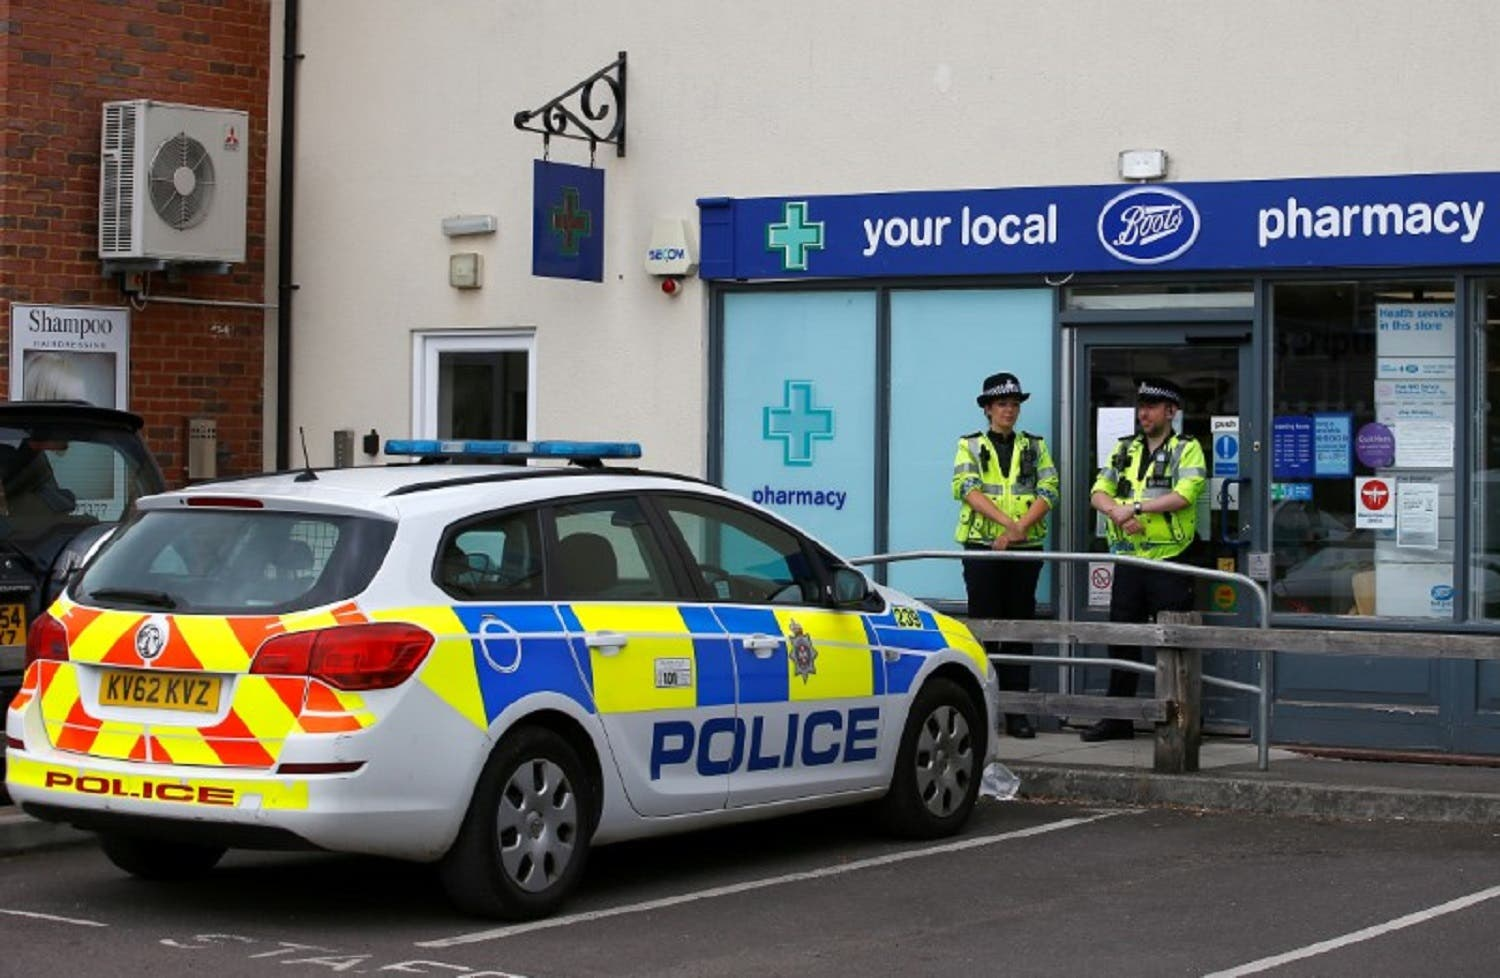 Police officers outside a pharmacy branch which was cordoned off after the poisoning of two people in Amesbury, in the UK. (Reuters)